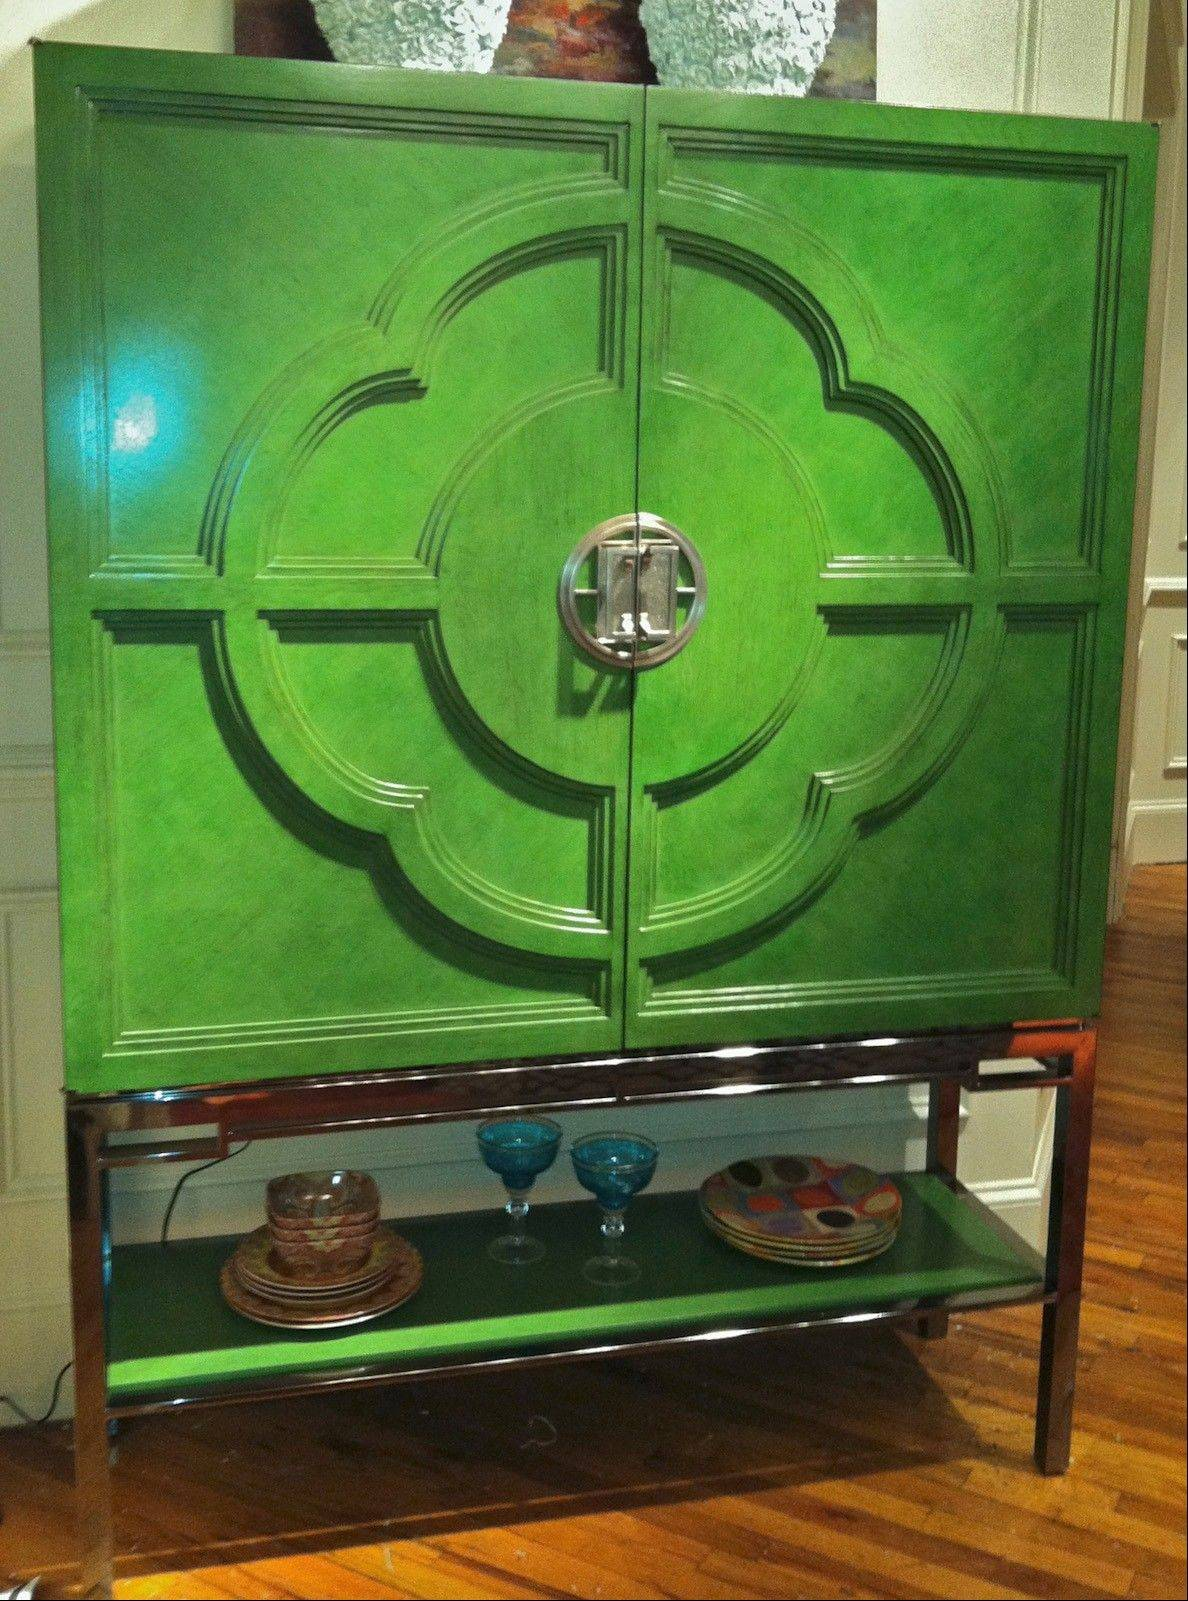 Painted lacquer in leaf-green highlights Century Furniture's Chin Hua bar cabinet, which sits atop a stainless-steel base.